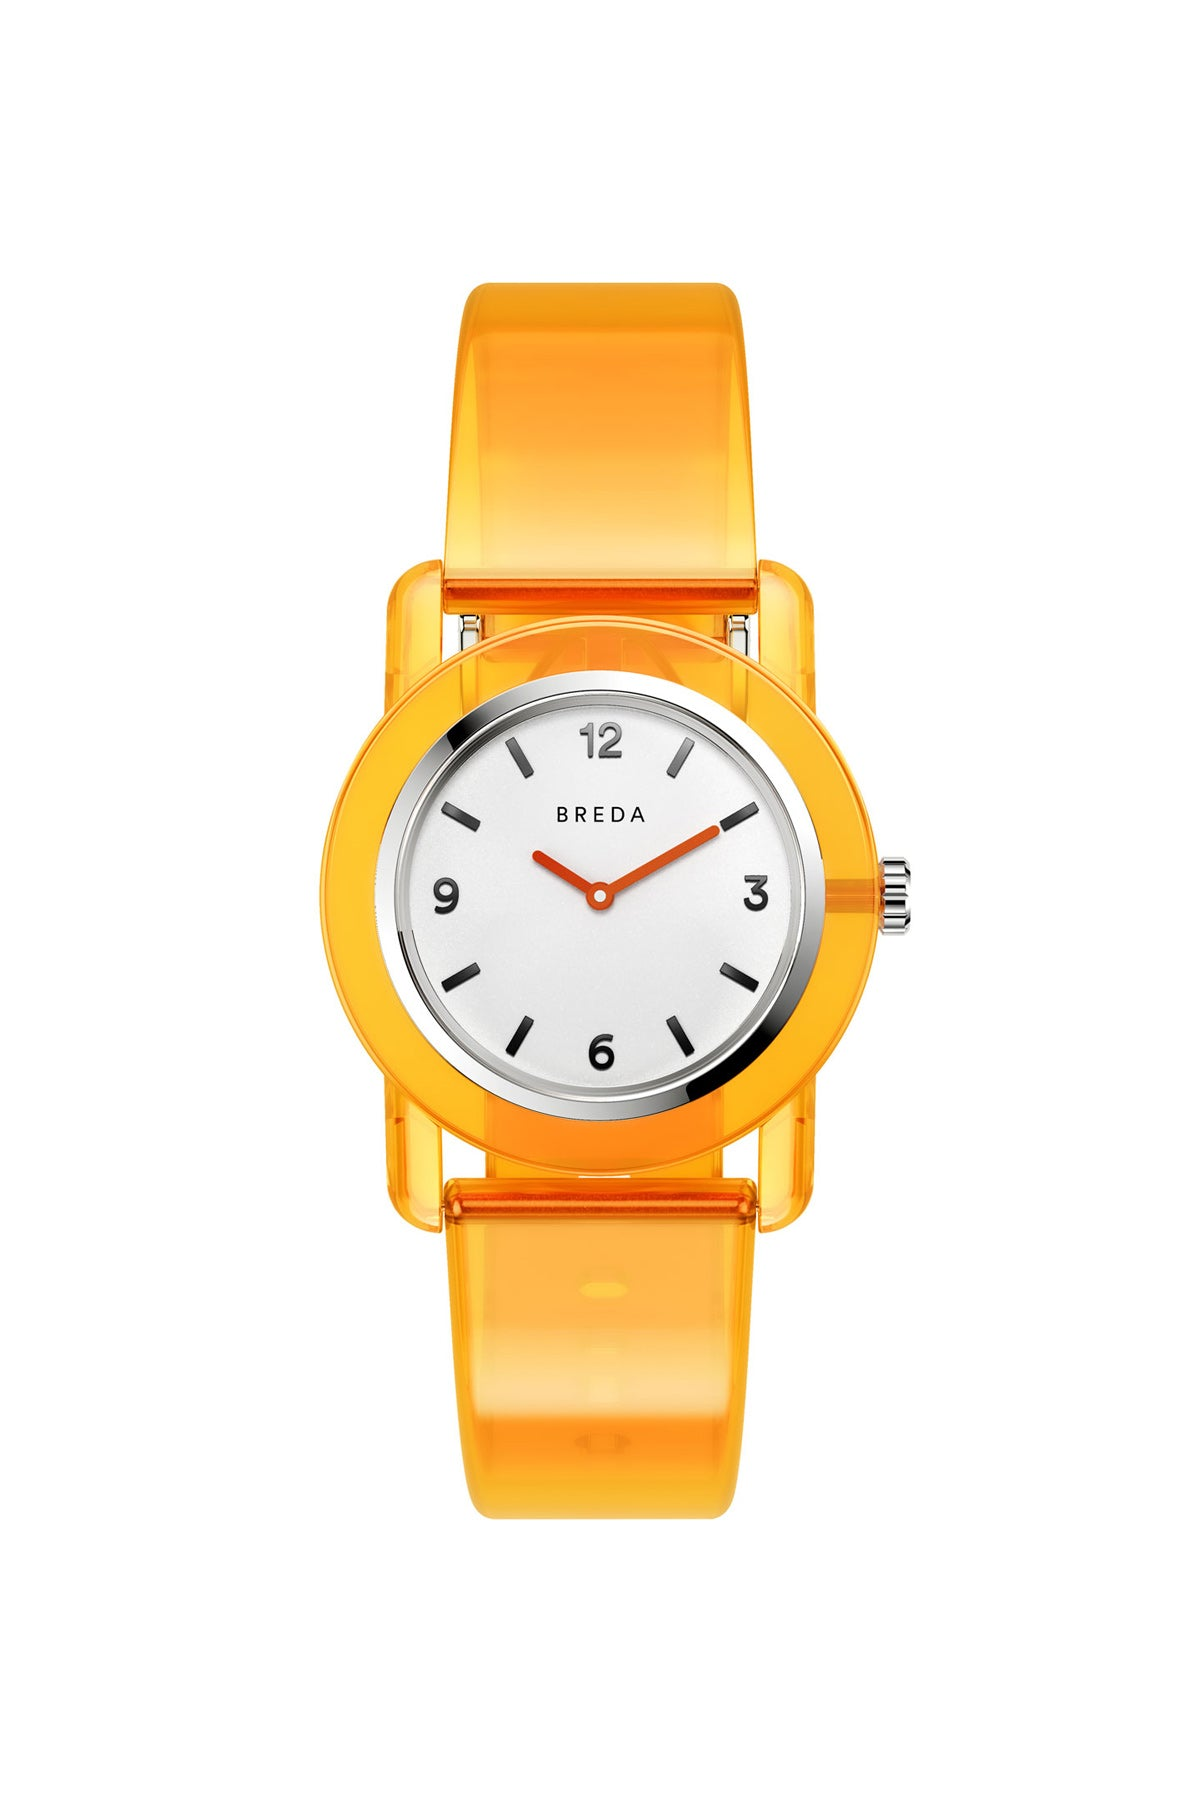 *PRE-ORDER* Breda PLAY Watch